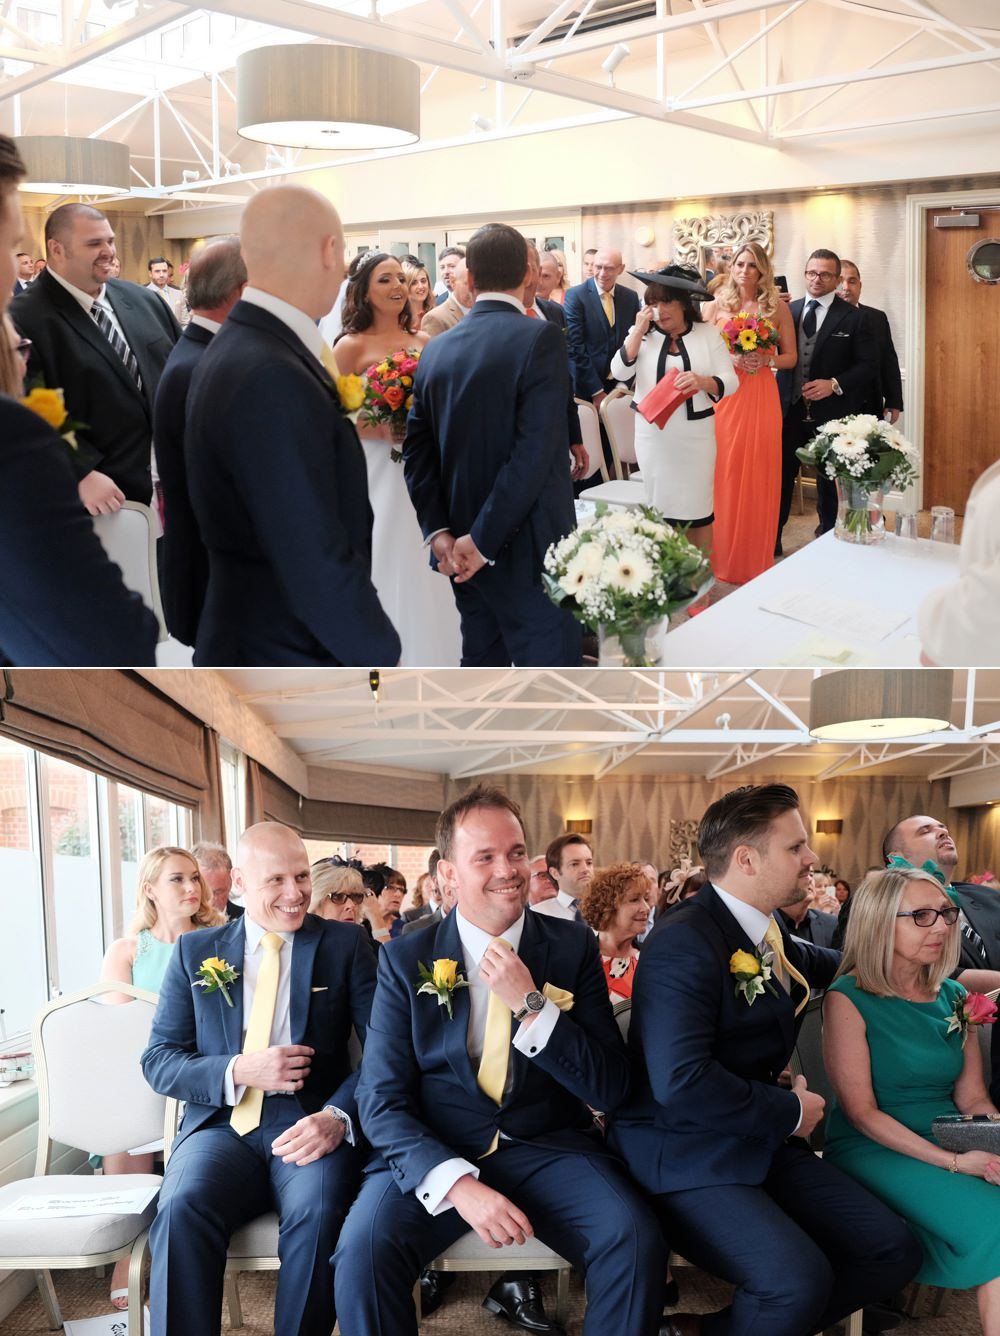 documentary-wedding-photography-essex_0119.jpg